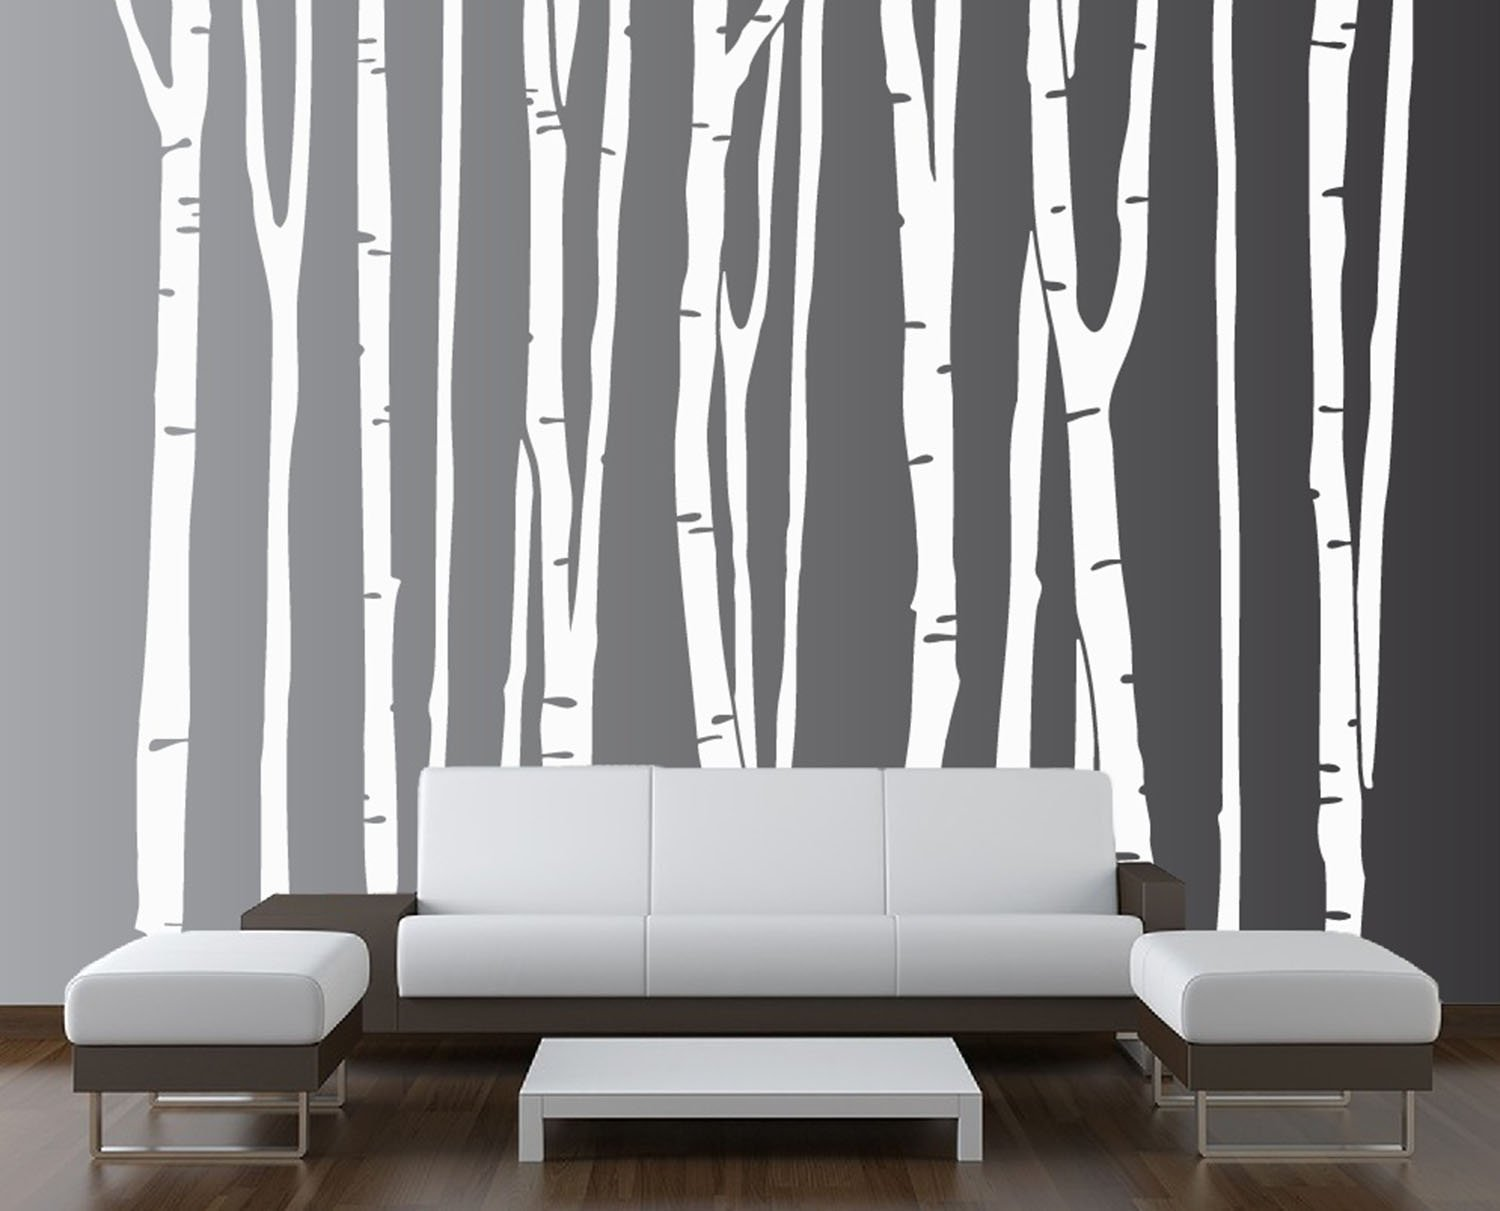 Innovative Stencils Large Wall Birch Tree Decal Forest Kids Vinyl Sticker Removable (9 Trees) 108'' (9 Feet) Tall #1109 by Innovative Stencils